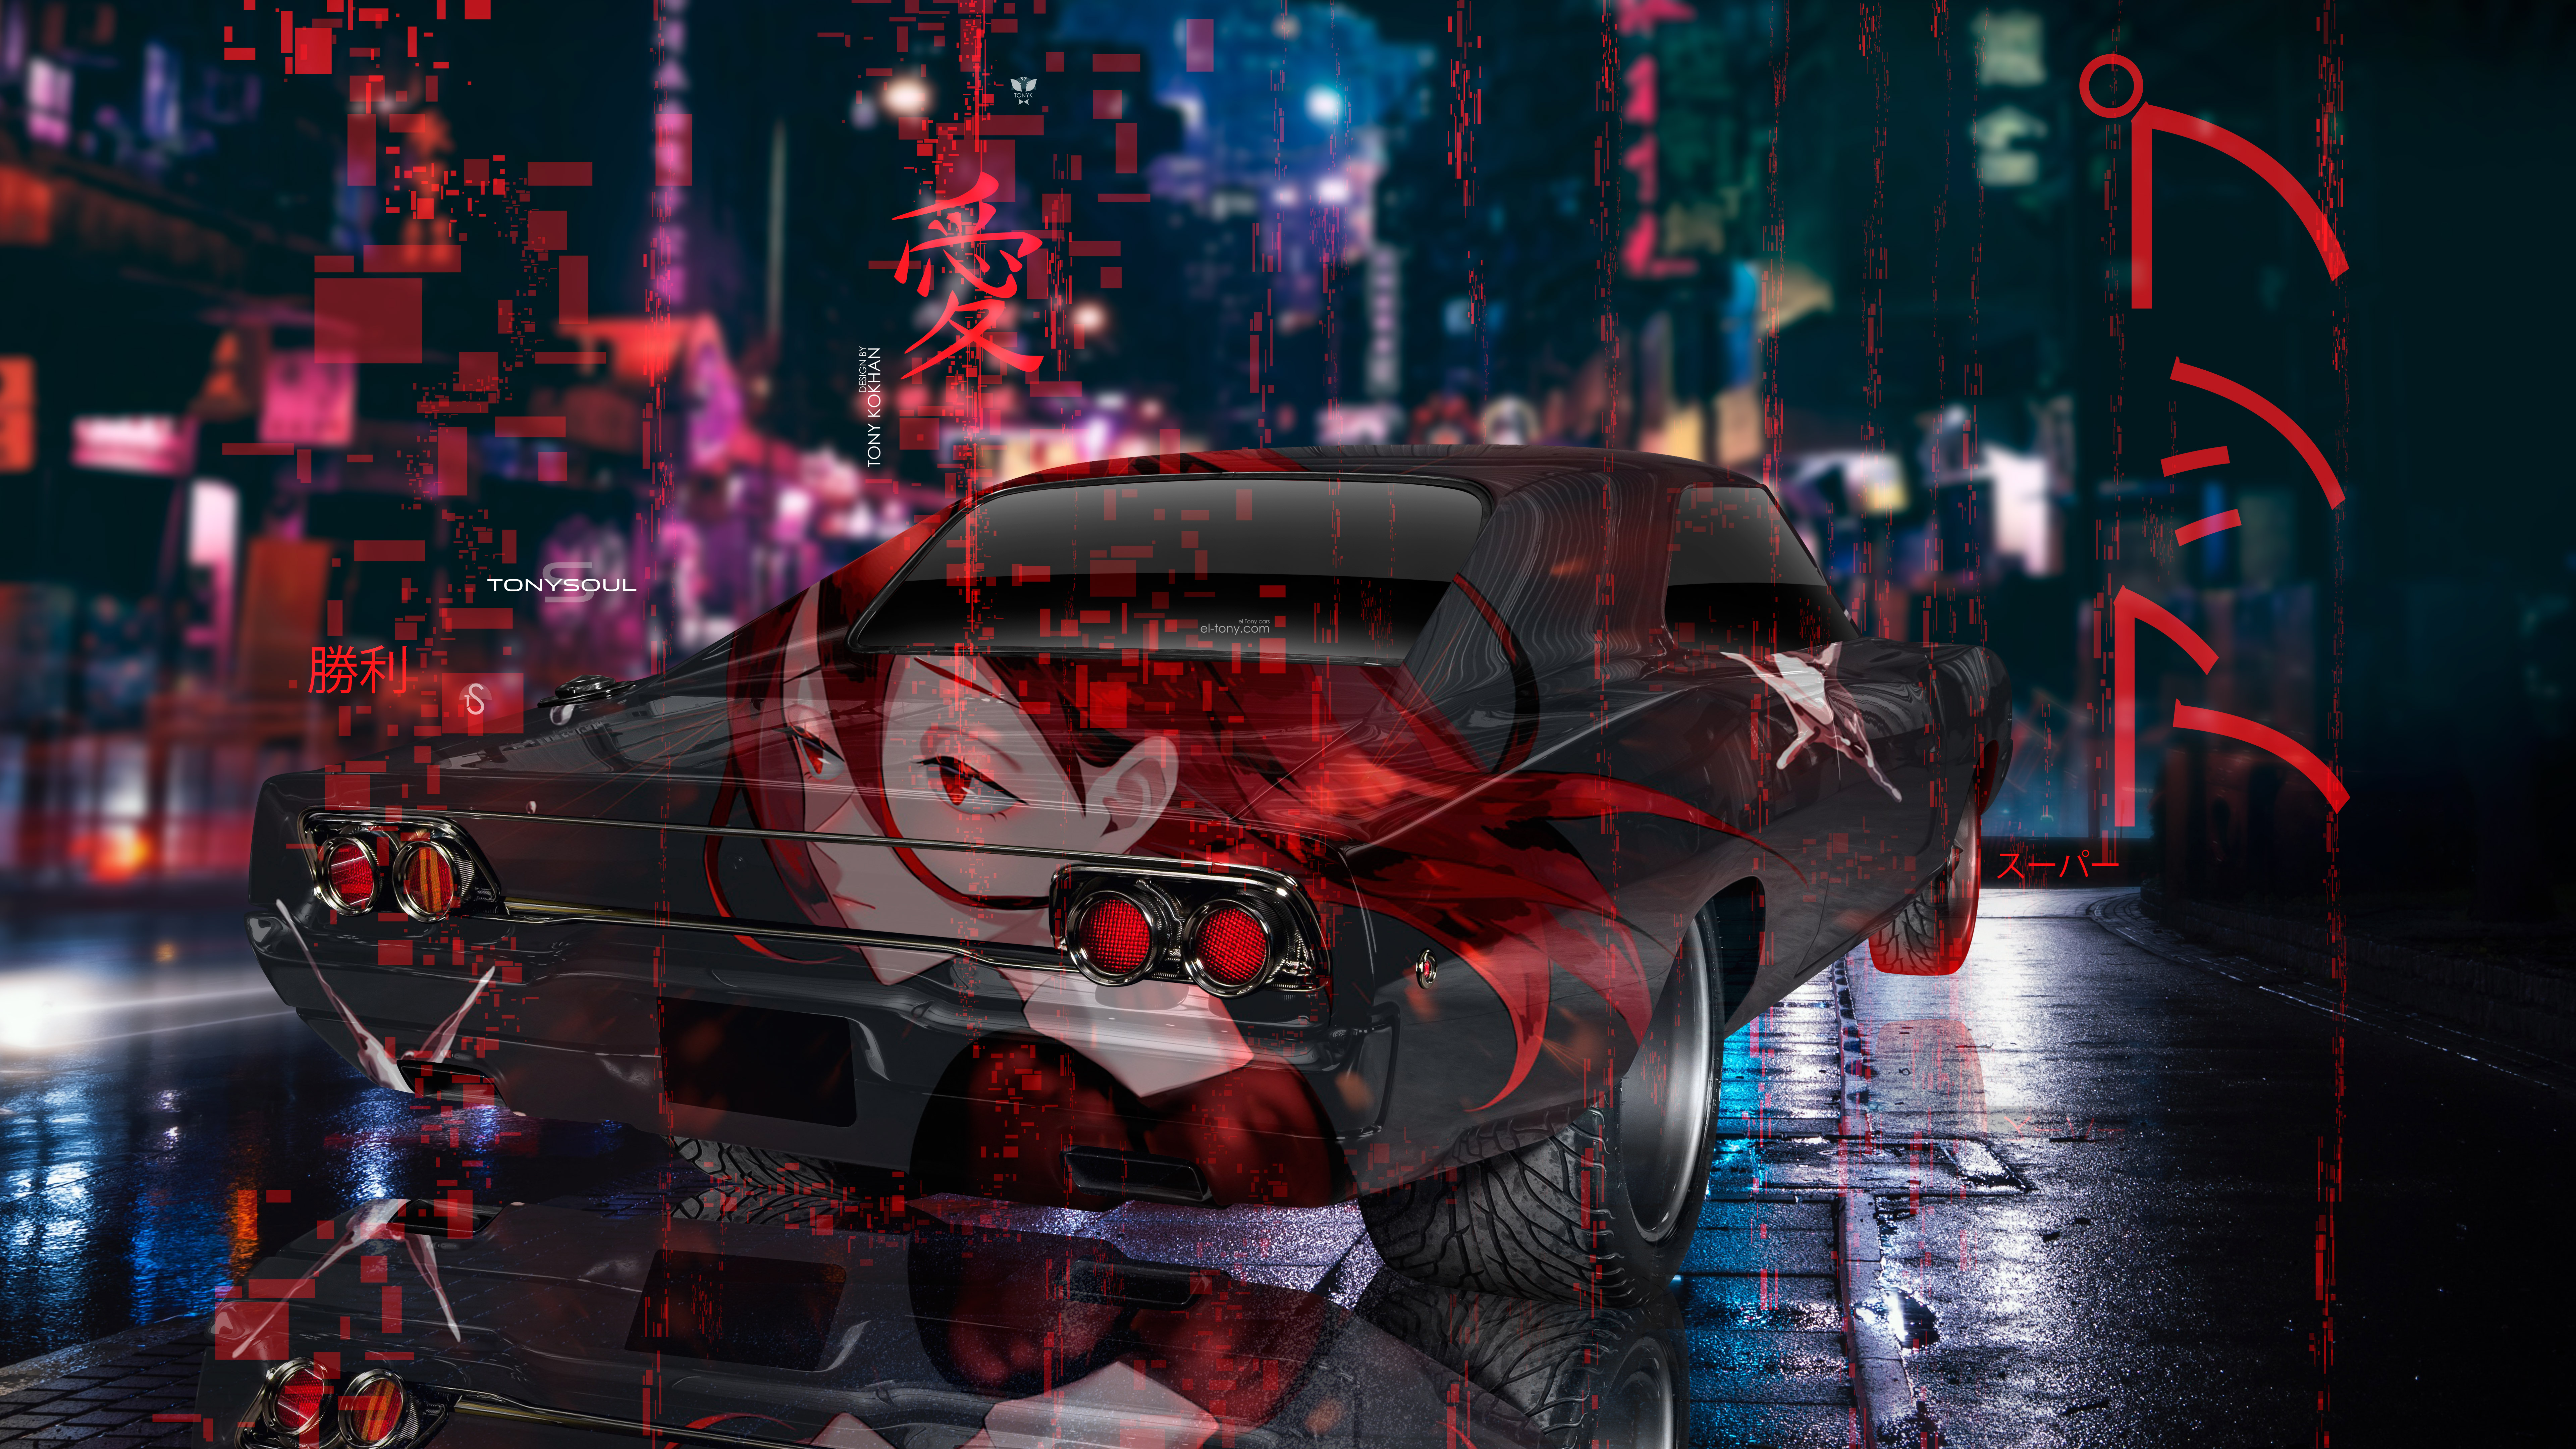 Dodge-Charger-RT-Muscle-Tuning-Anime-Girl-Love-Victory-Infinity-Japanese-Hieroglyph-Super-Up-Night-City-Car-2019-Multicolors-8K-Wallpapers-design-by-Tony-Kokhan-www.el-tony.com-image